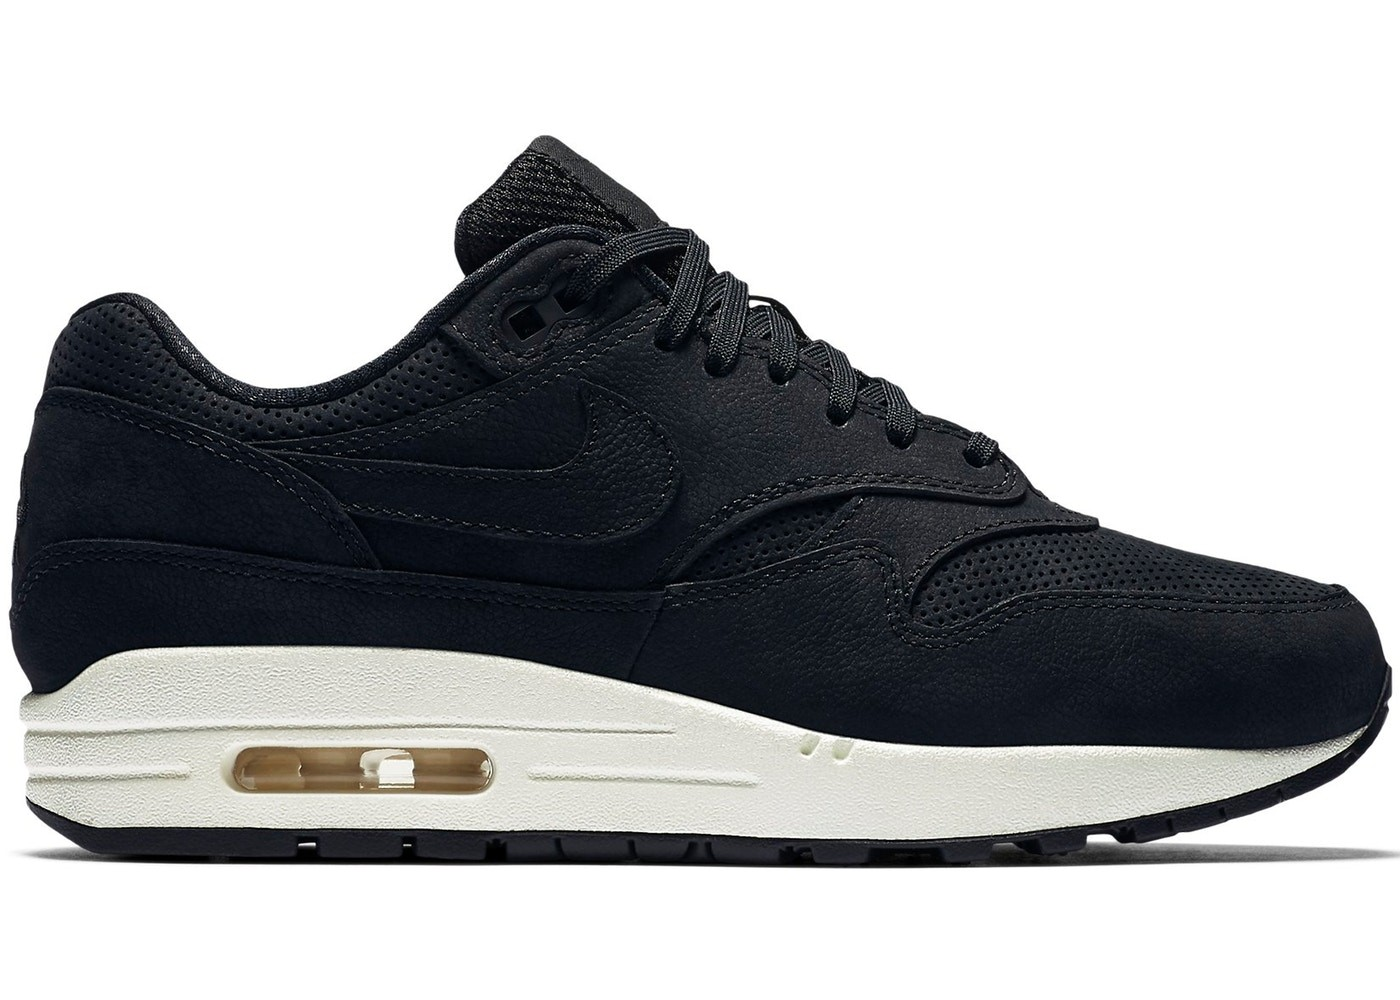 Schoenen Nike Air Max 1 Pinnacle 839608-005 - Zwart/Sail/Zwart